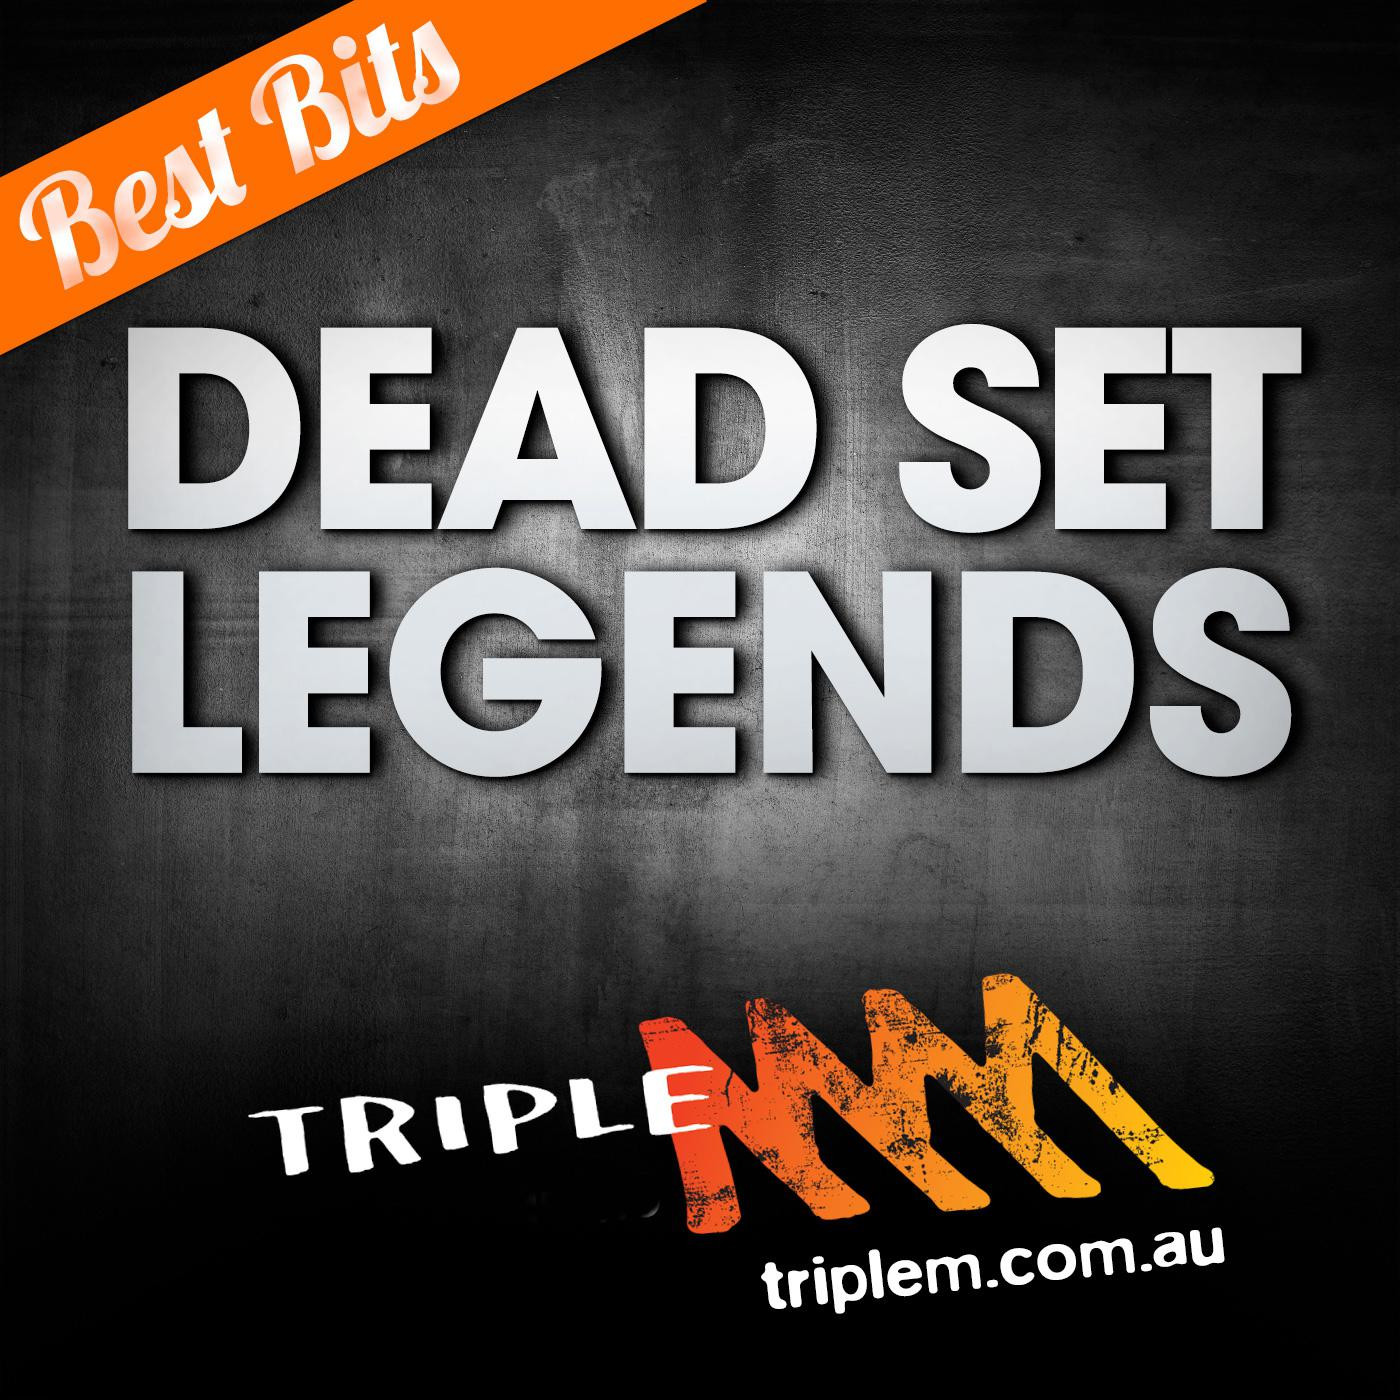 Dead Set Legends Sydney: Best Bits